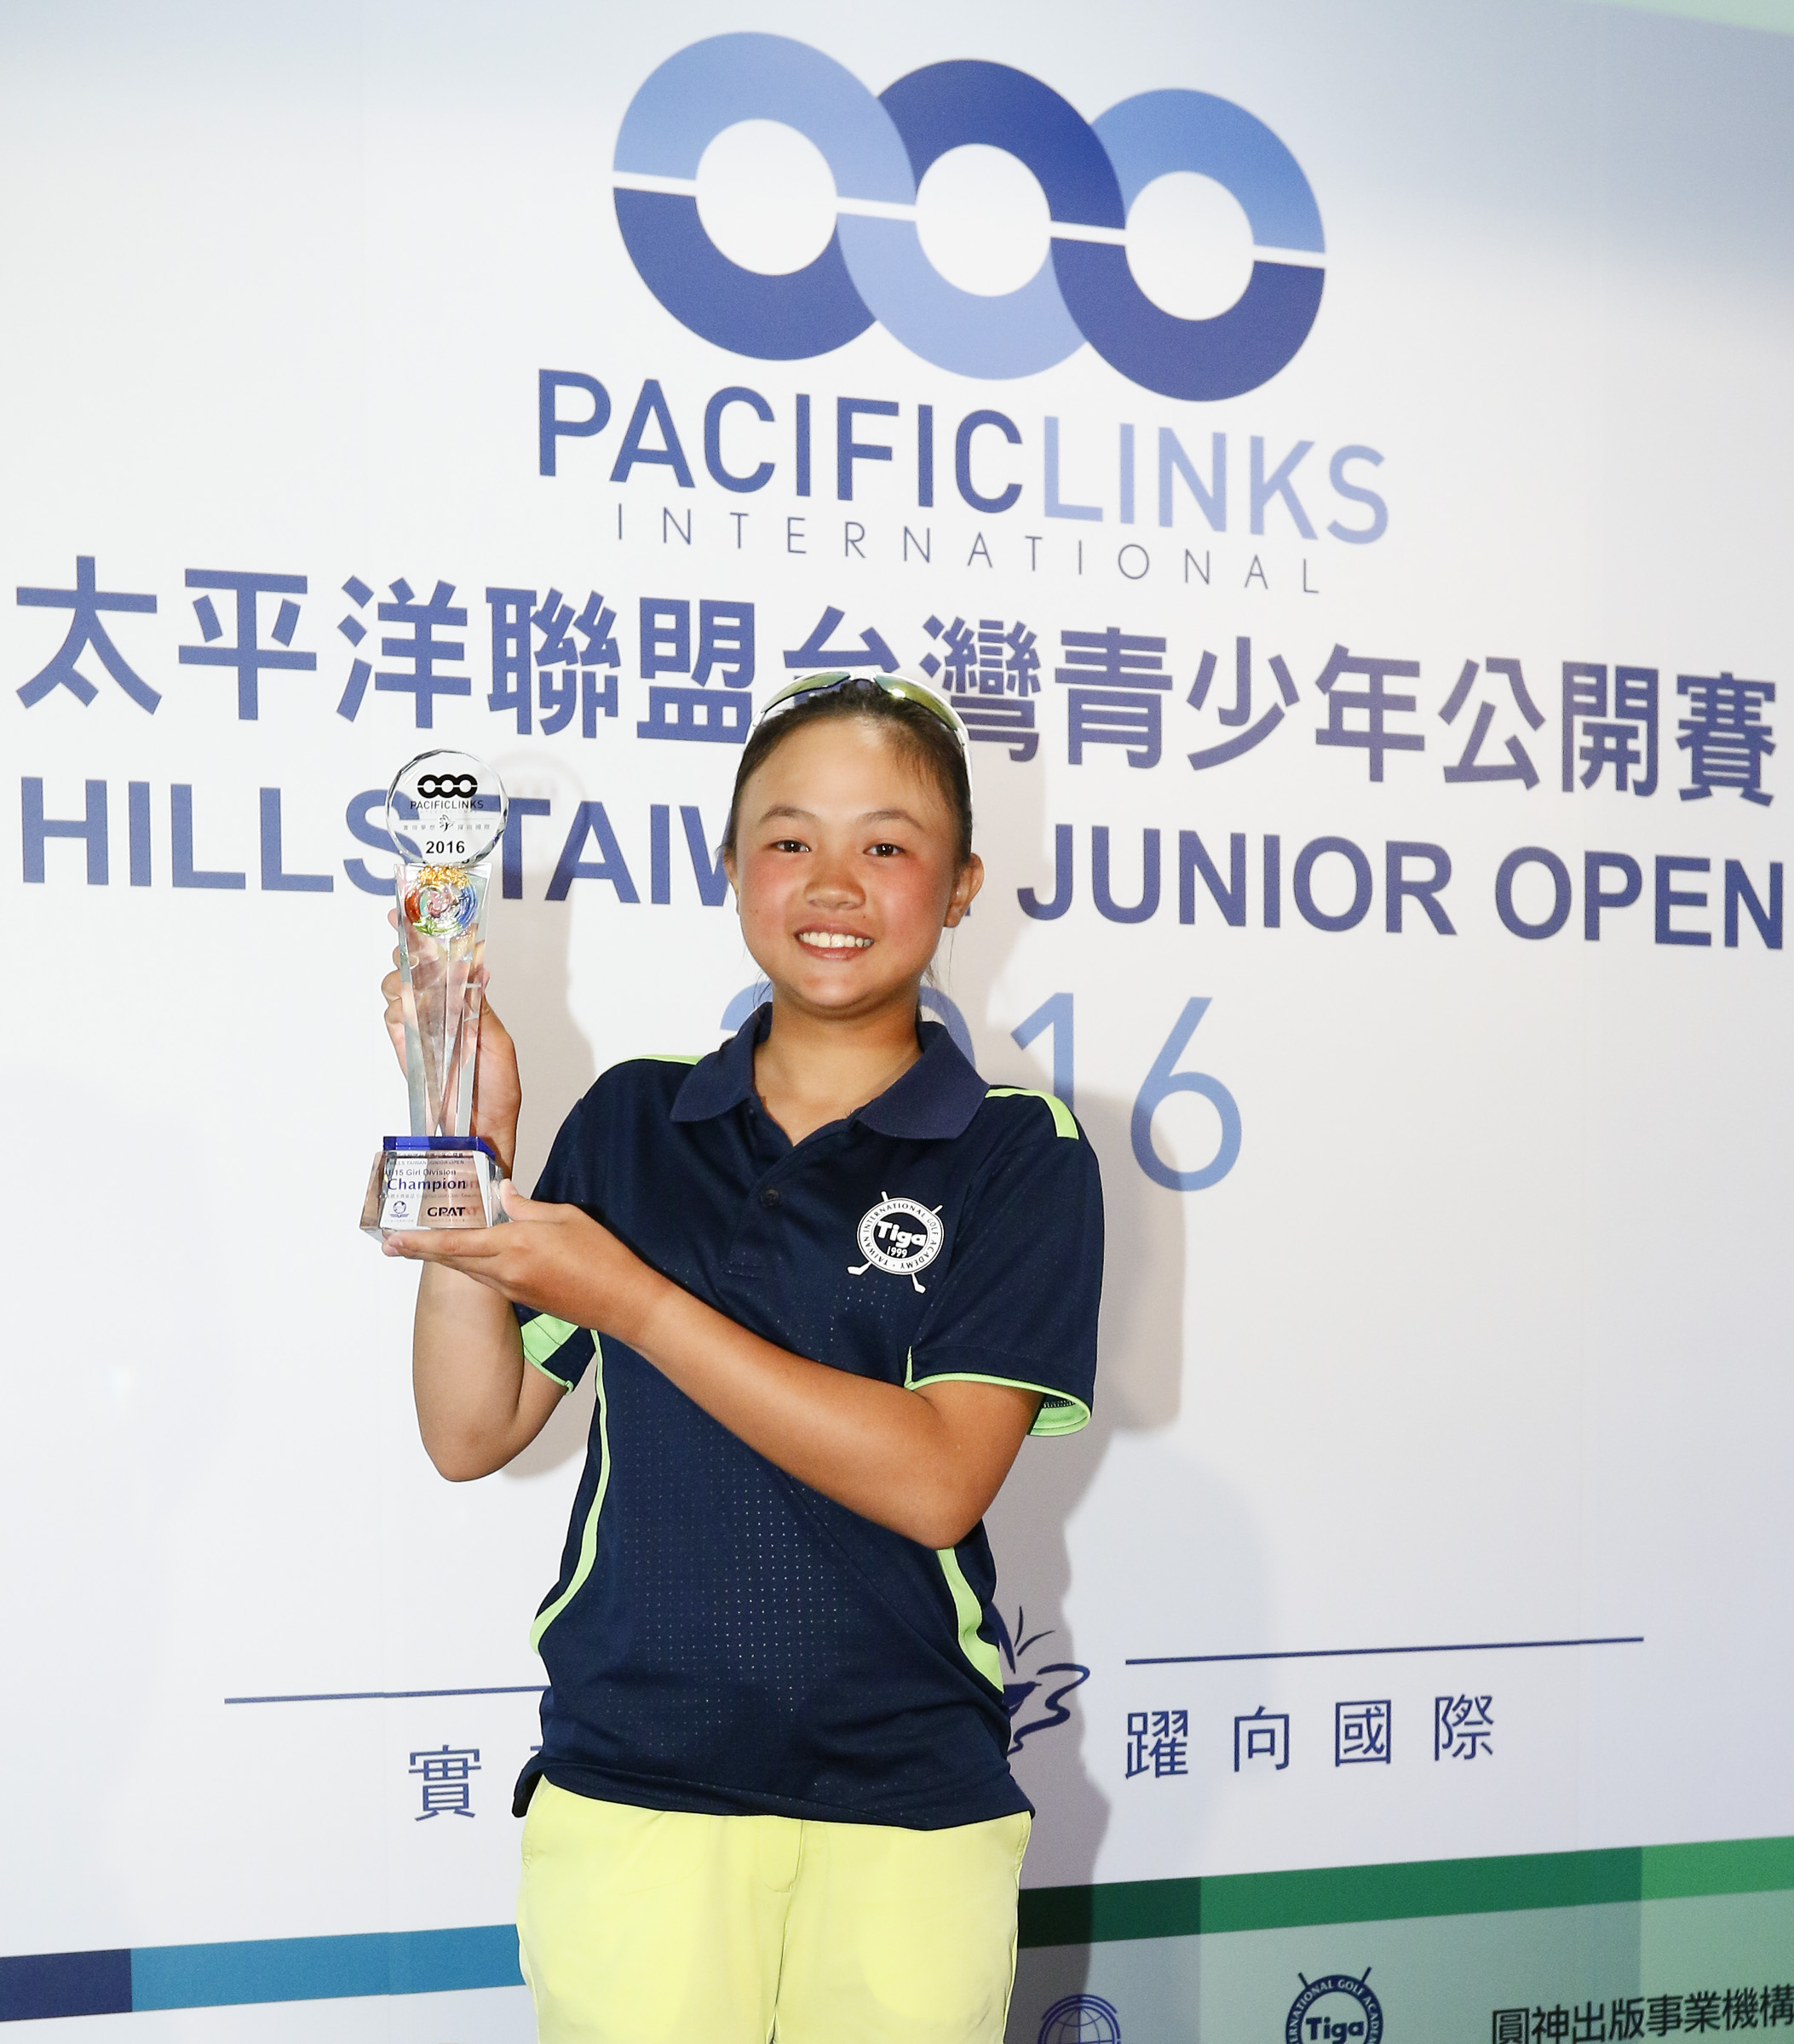 Jamie Hsieh won the 2016 Taiwan Junior Open